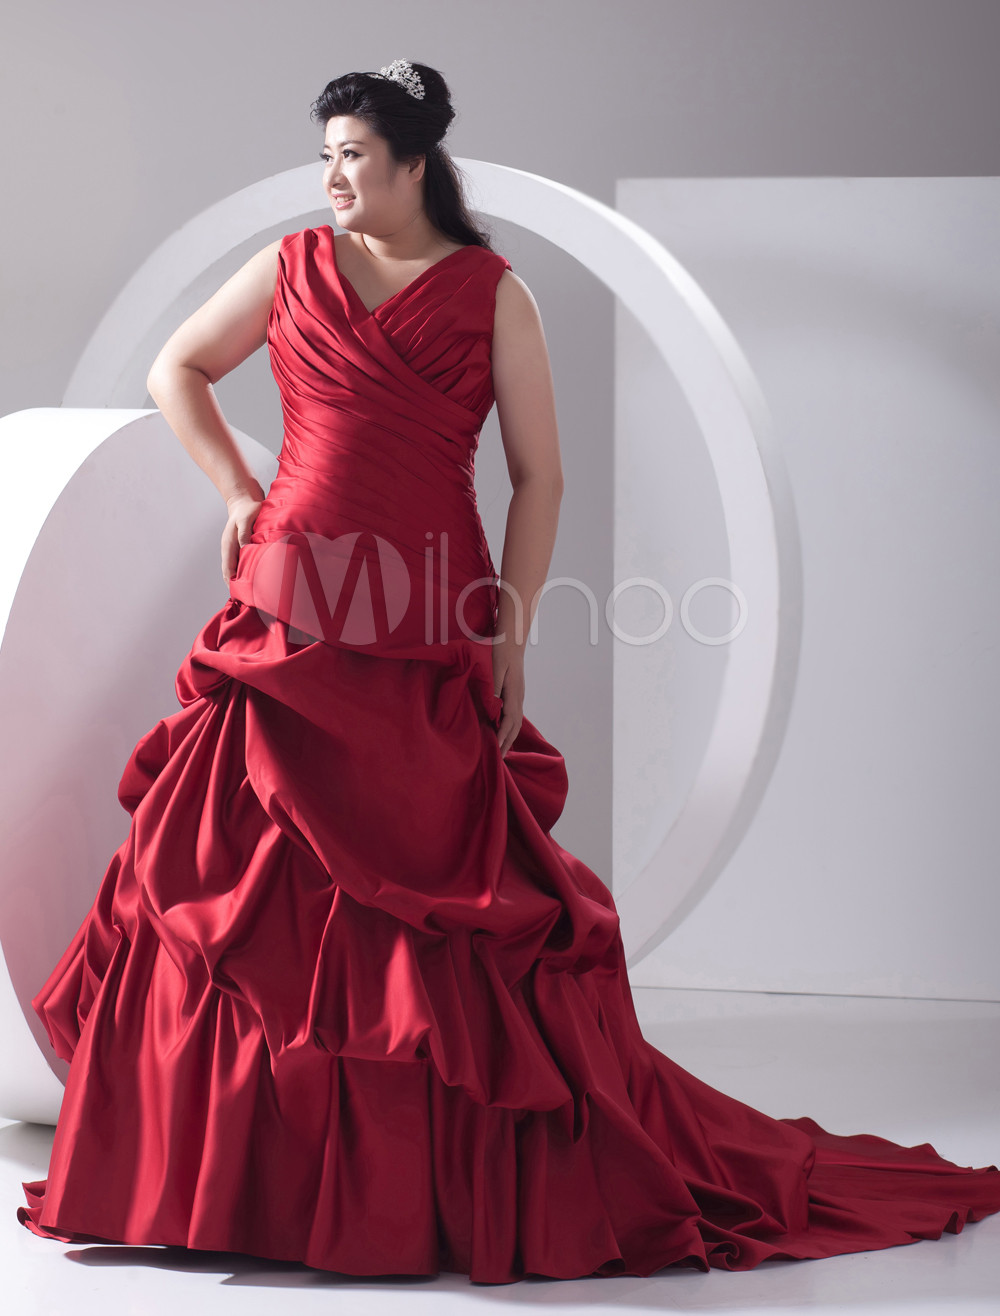 Red Ball Gown V-Neck Pleated Satin Plus Size Wedding Dress For Bride